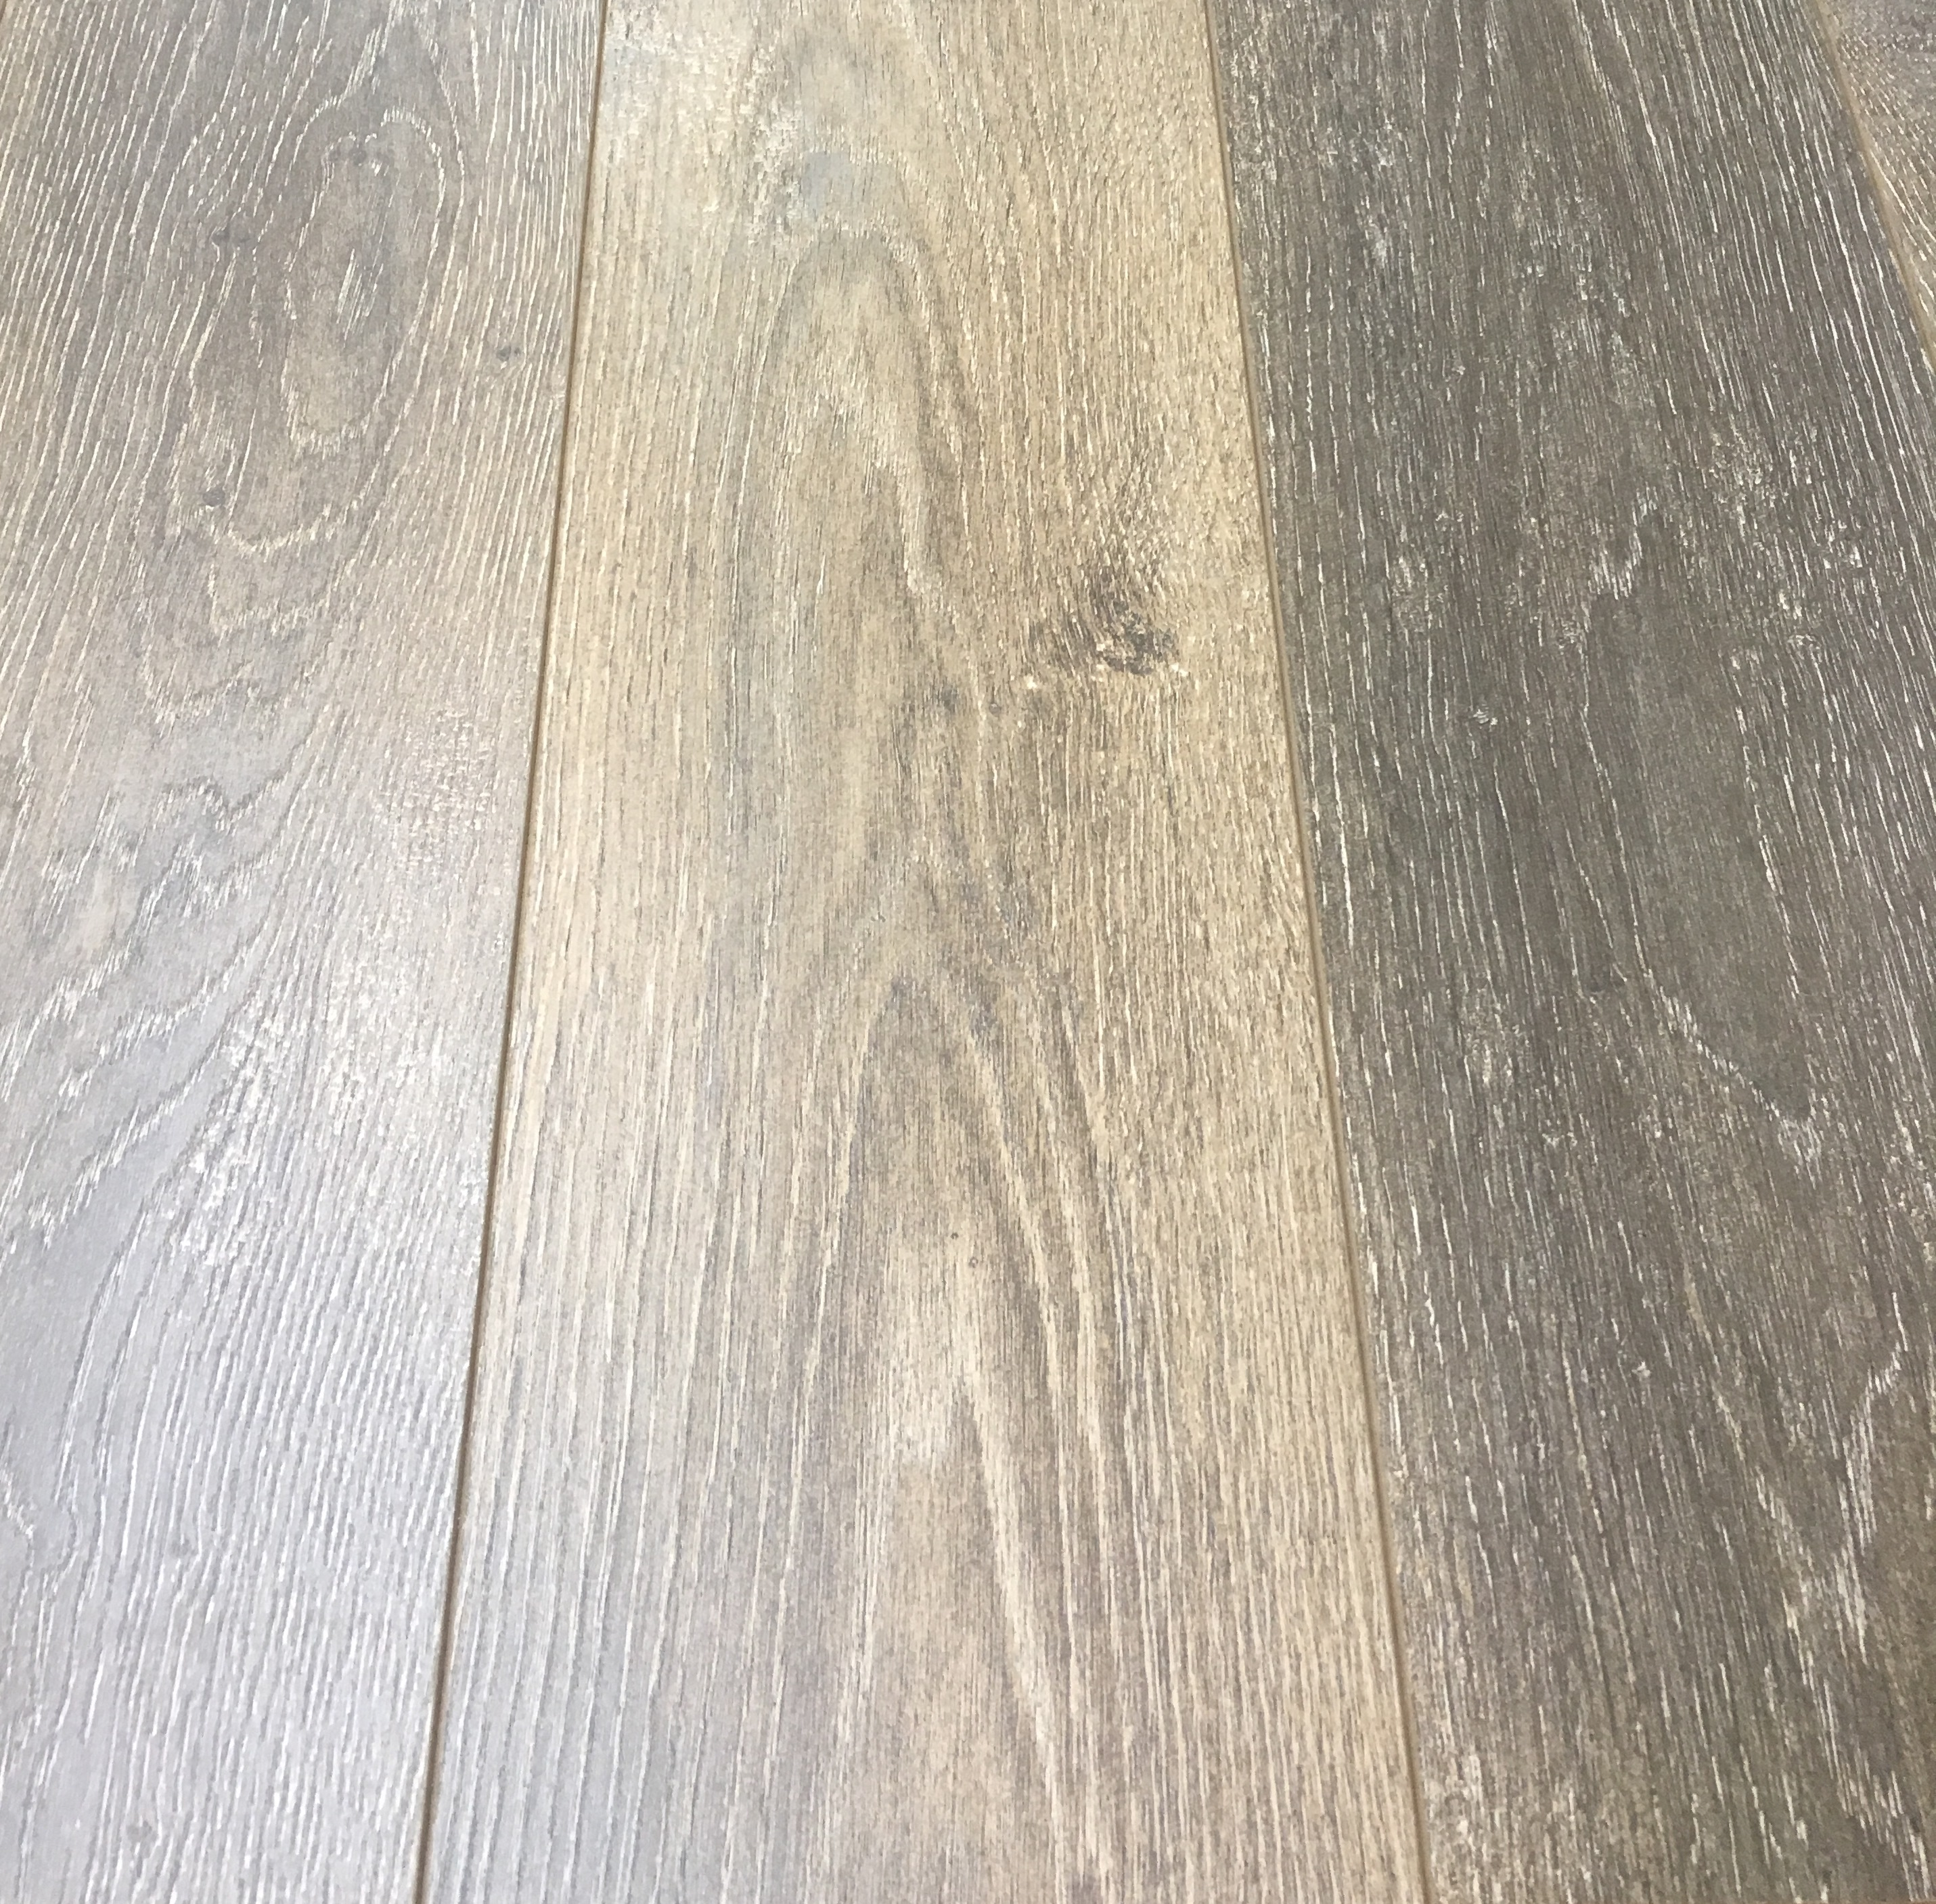 tigerwood hardwood exotic sale lauzon continental flooring floors product ottawa designer natural international brown laminate